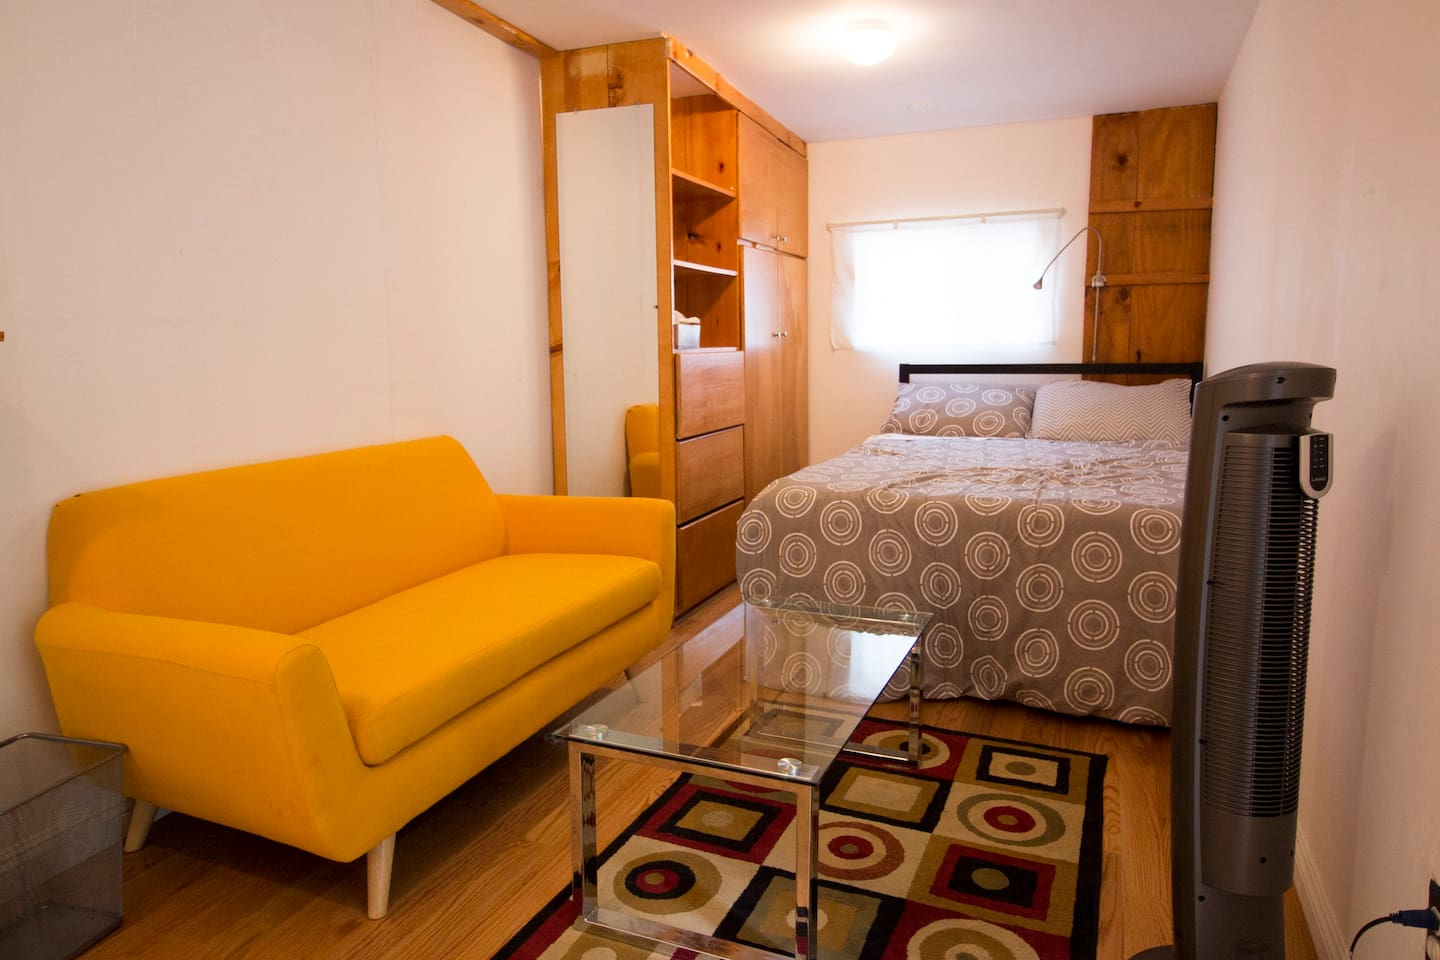 Full-sized bed. Small sofa and table. Closet space. Fan.